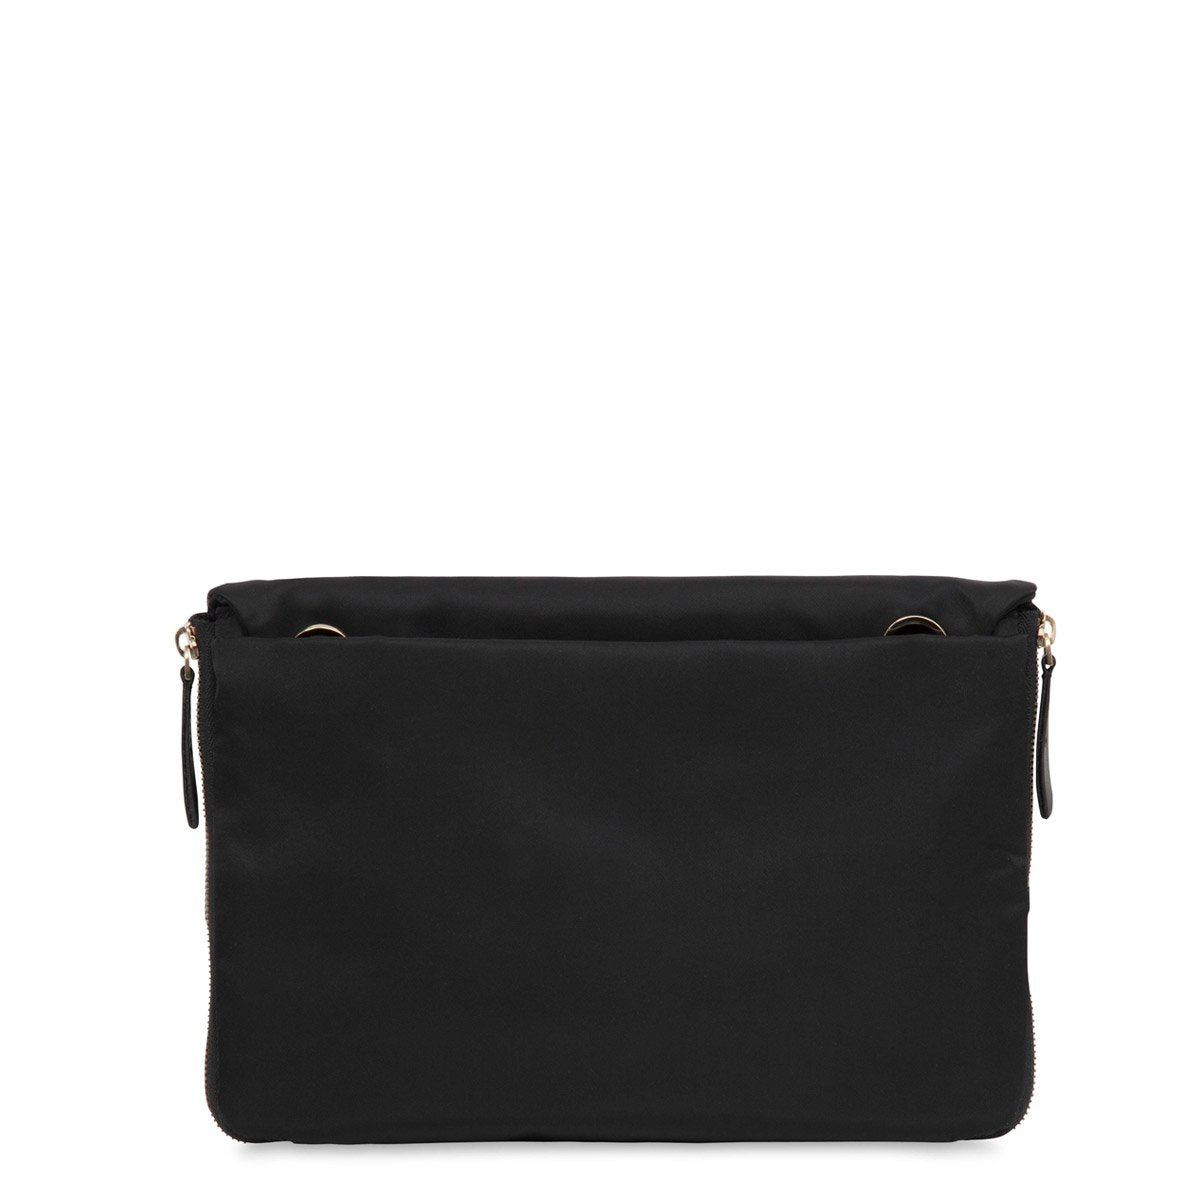 Digital Clutch / Shoulder Bag 10""